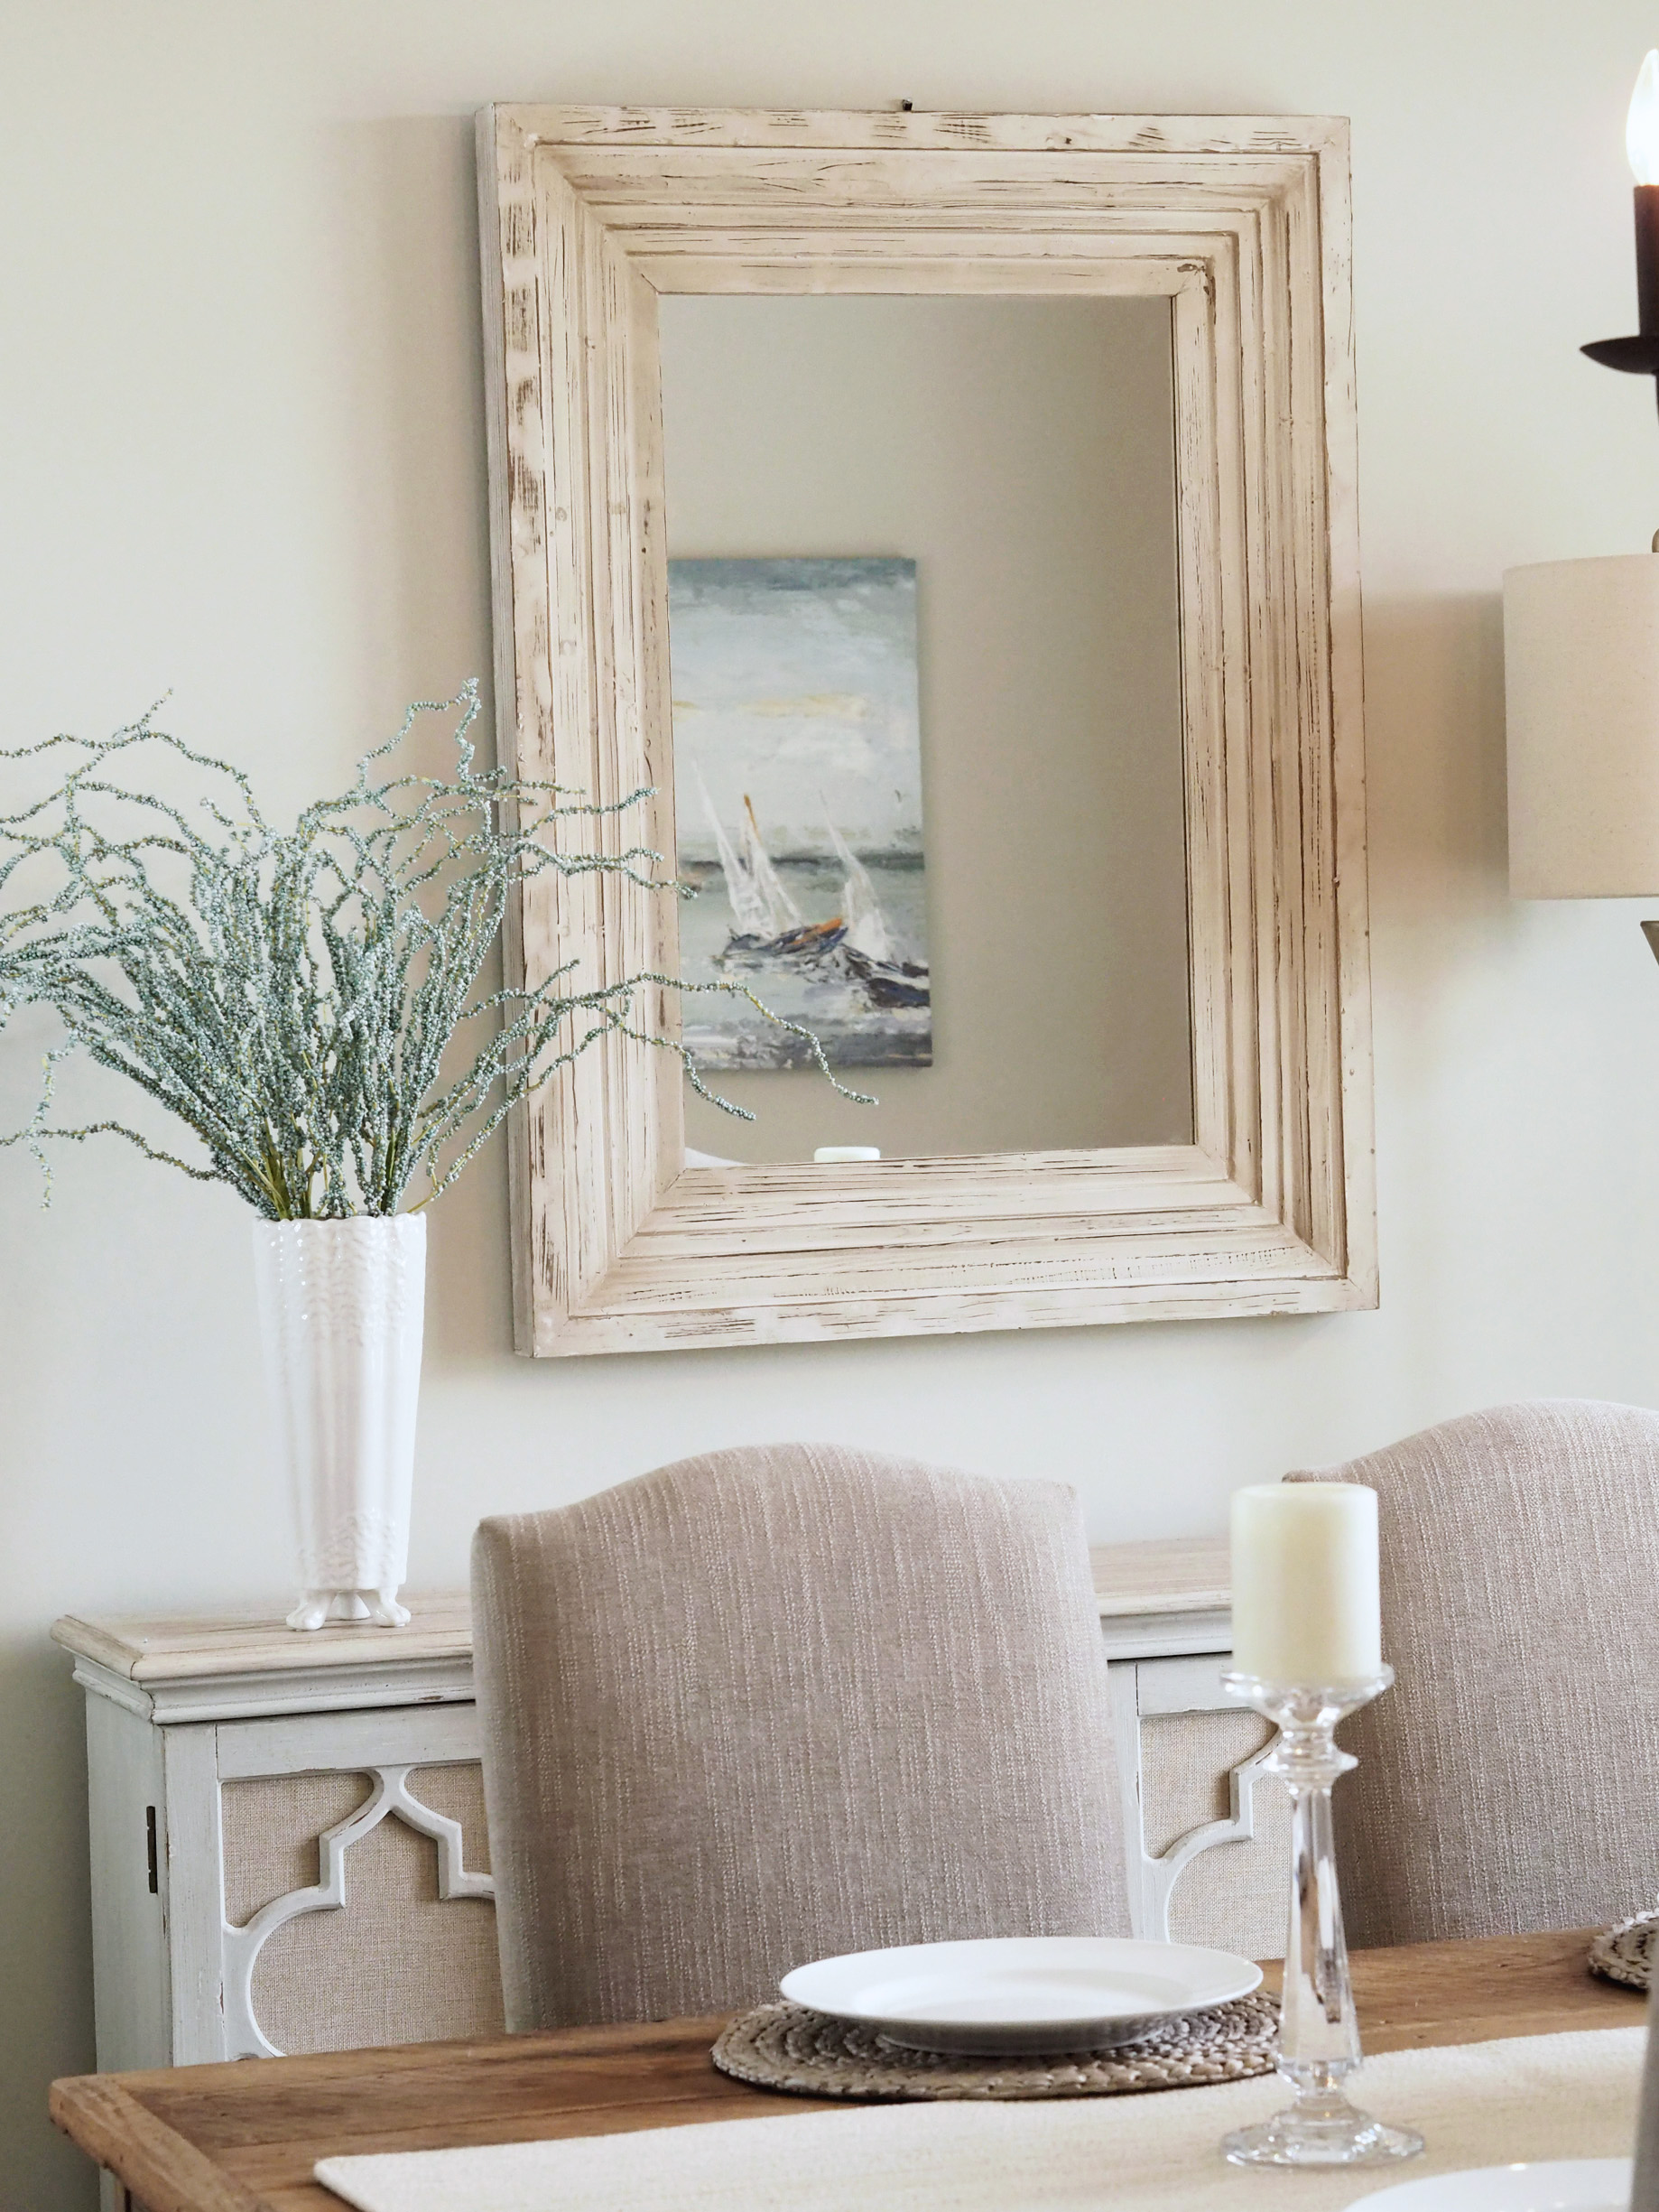 Perfect mirror which blends well with the rustic dining room table and the top surface of the buffet. This is the Bailey Farmhouse 30x40 mirror from  Pier 1 Imports.